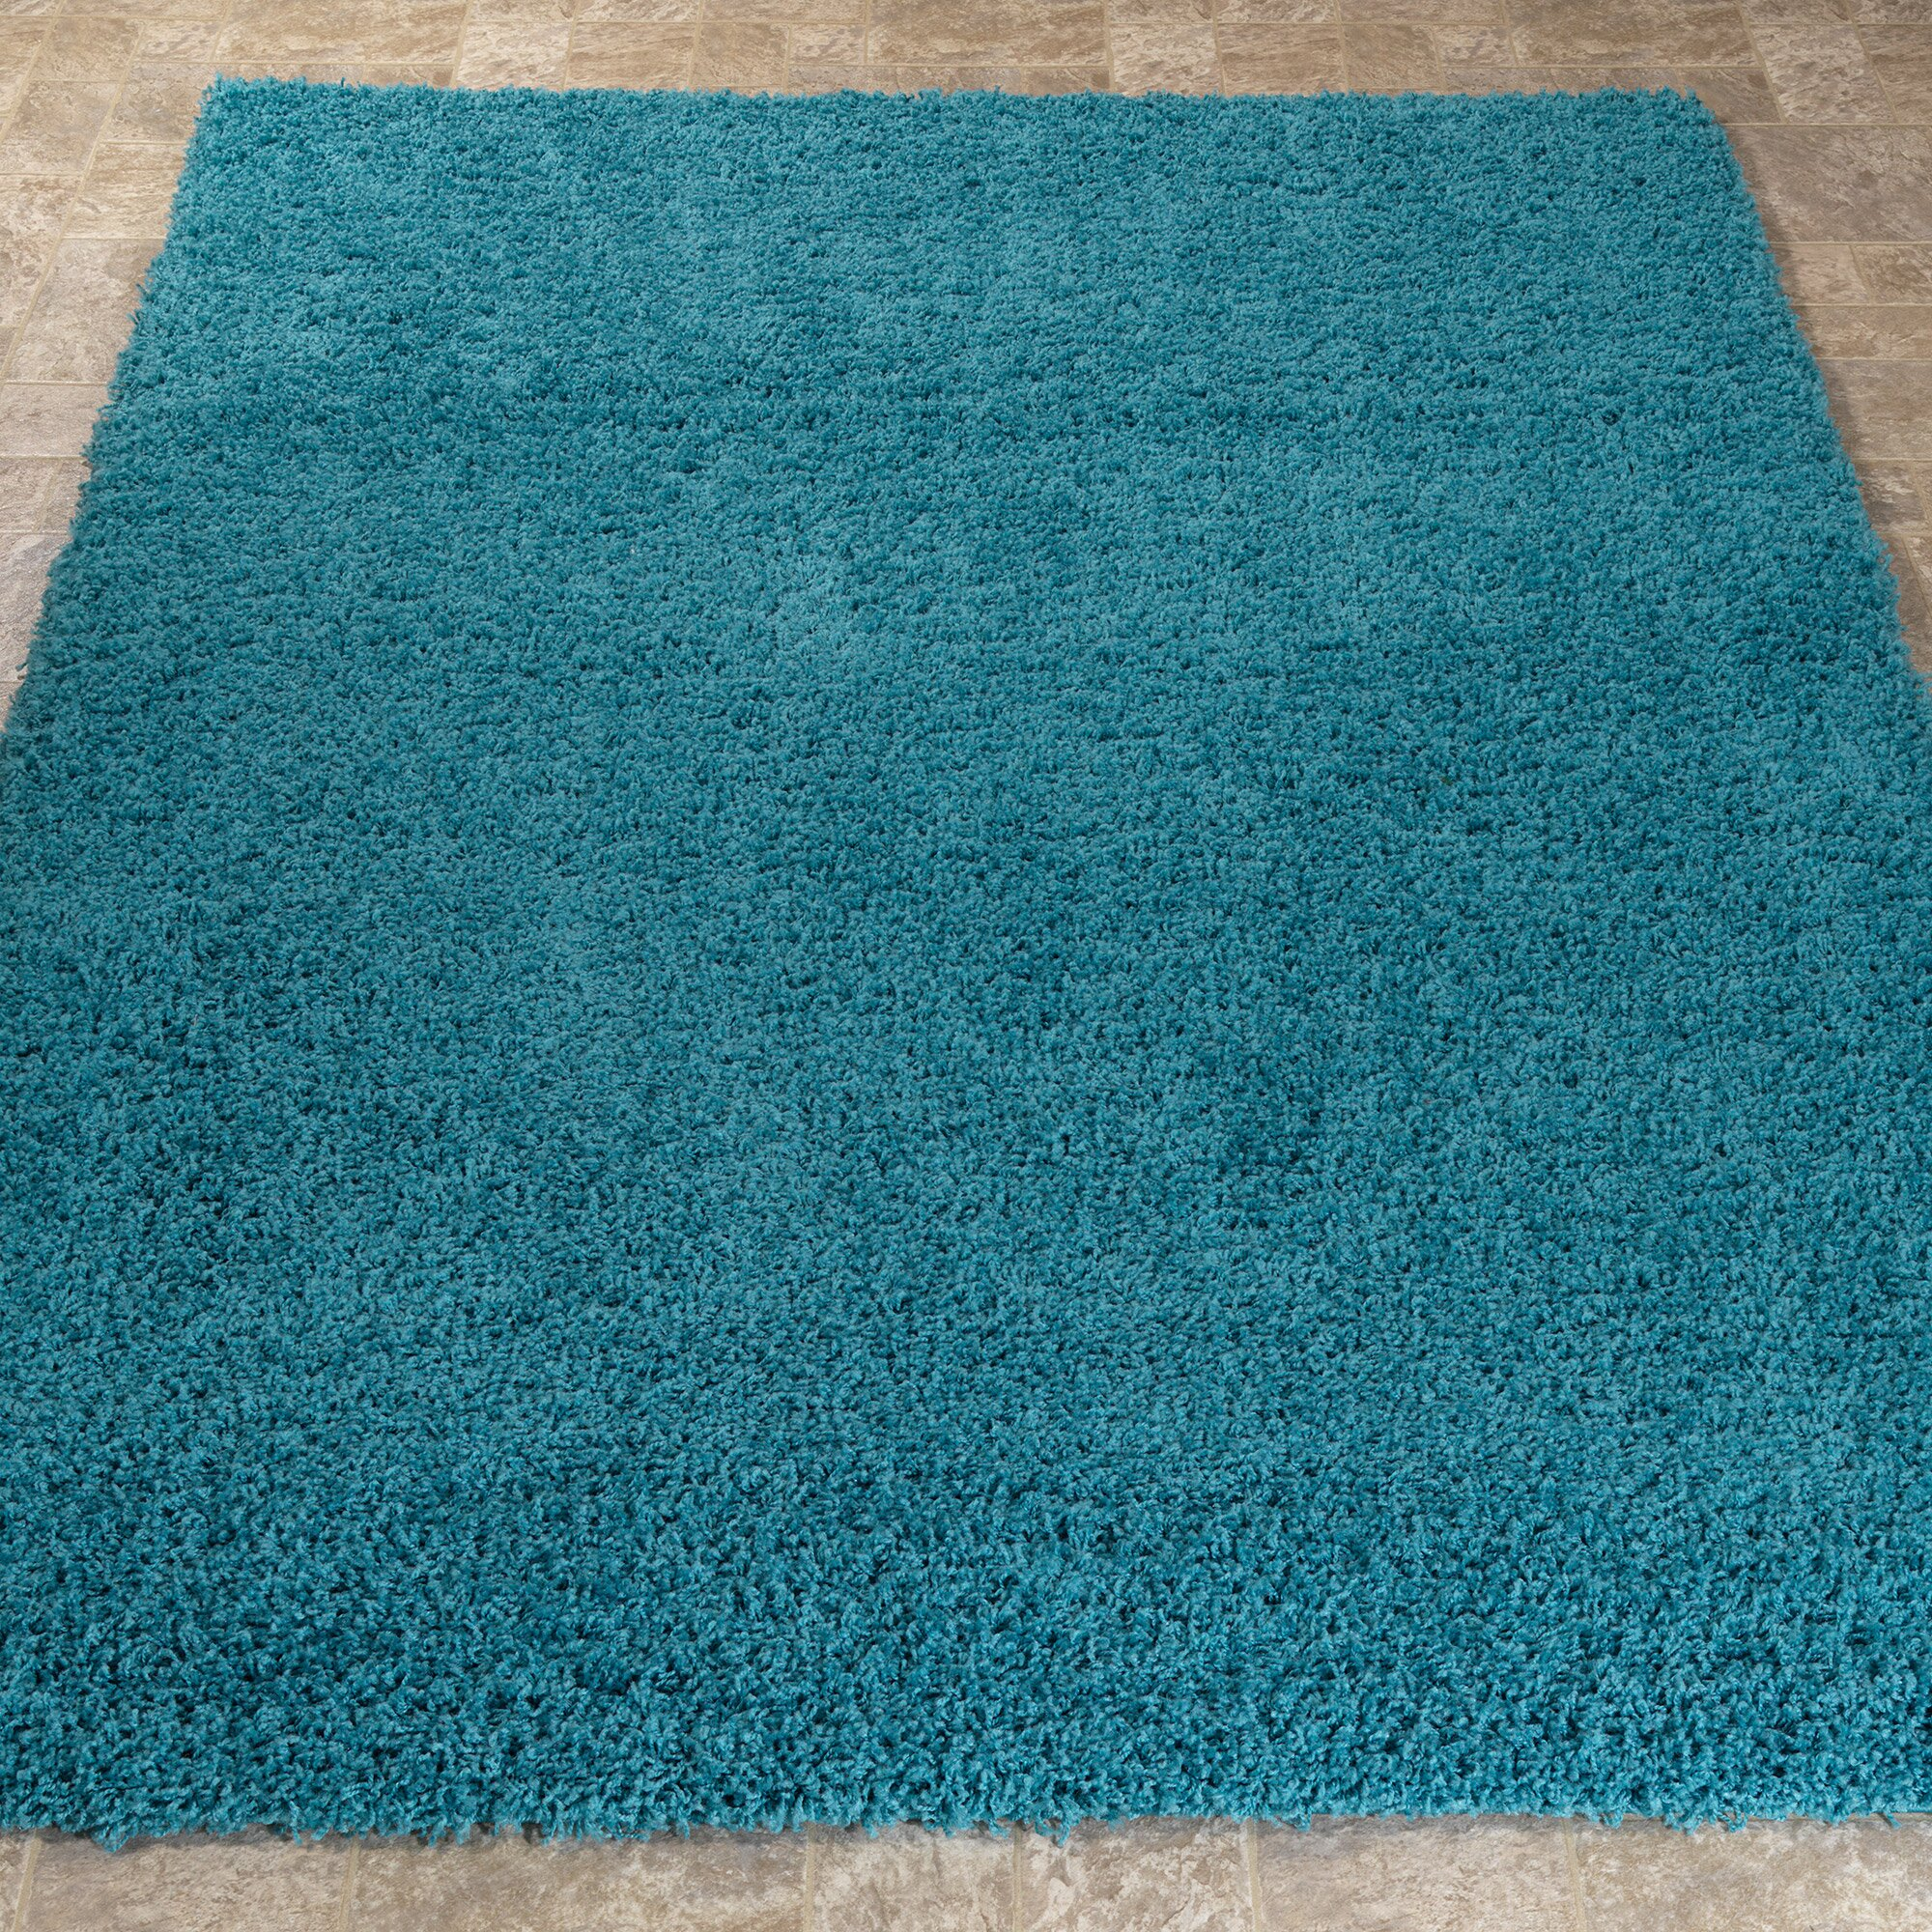 Ottomanson turquoise blue shaggy area rug reviews wayfair - Tapis shaggy turquoise ...